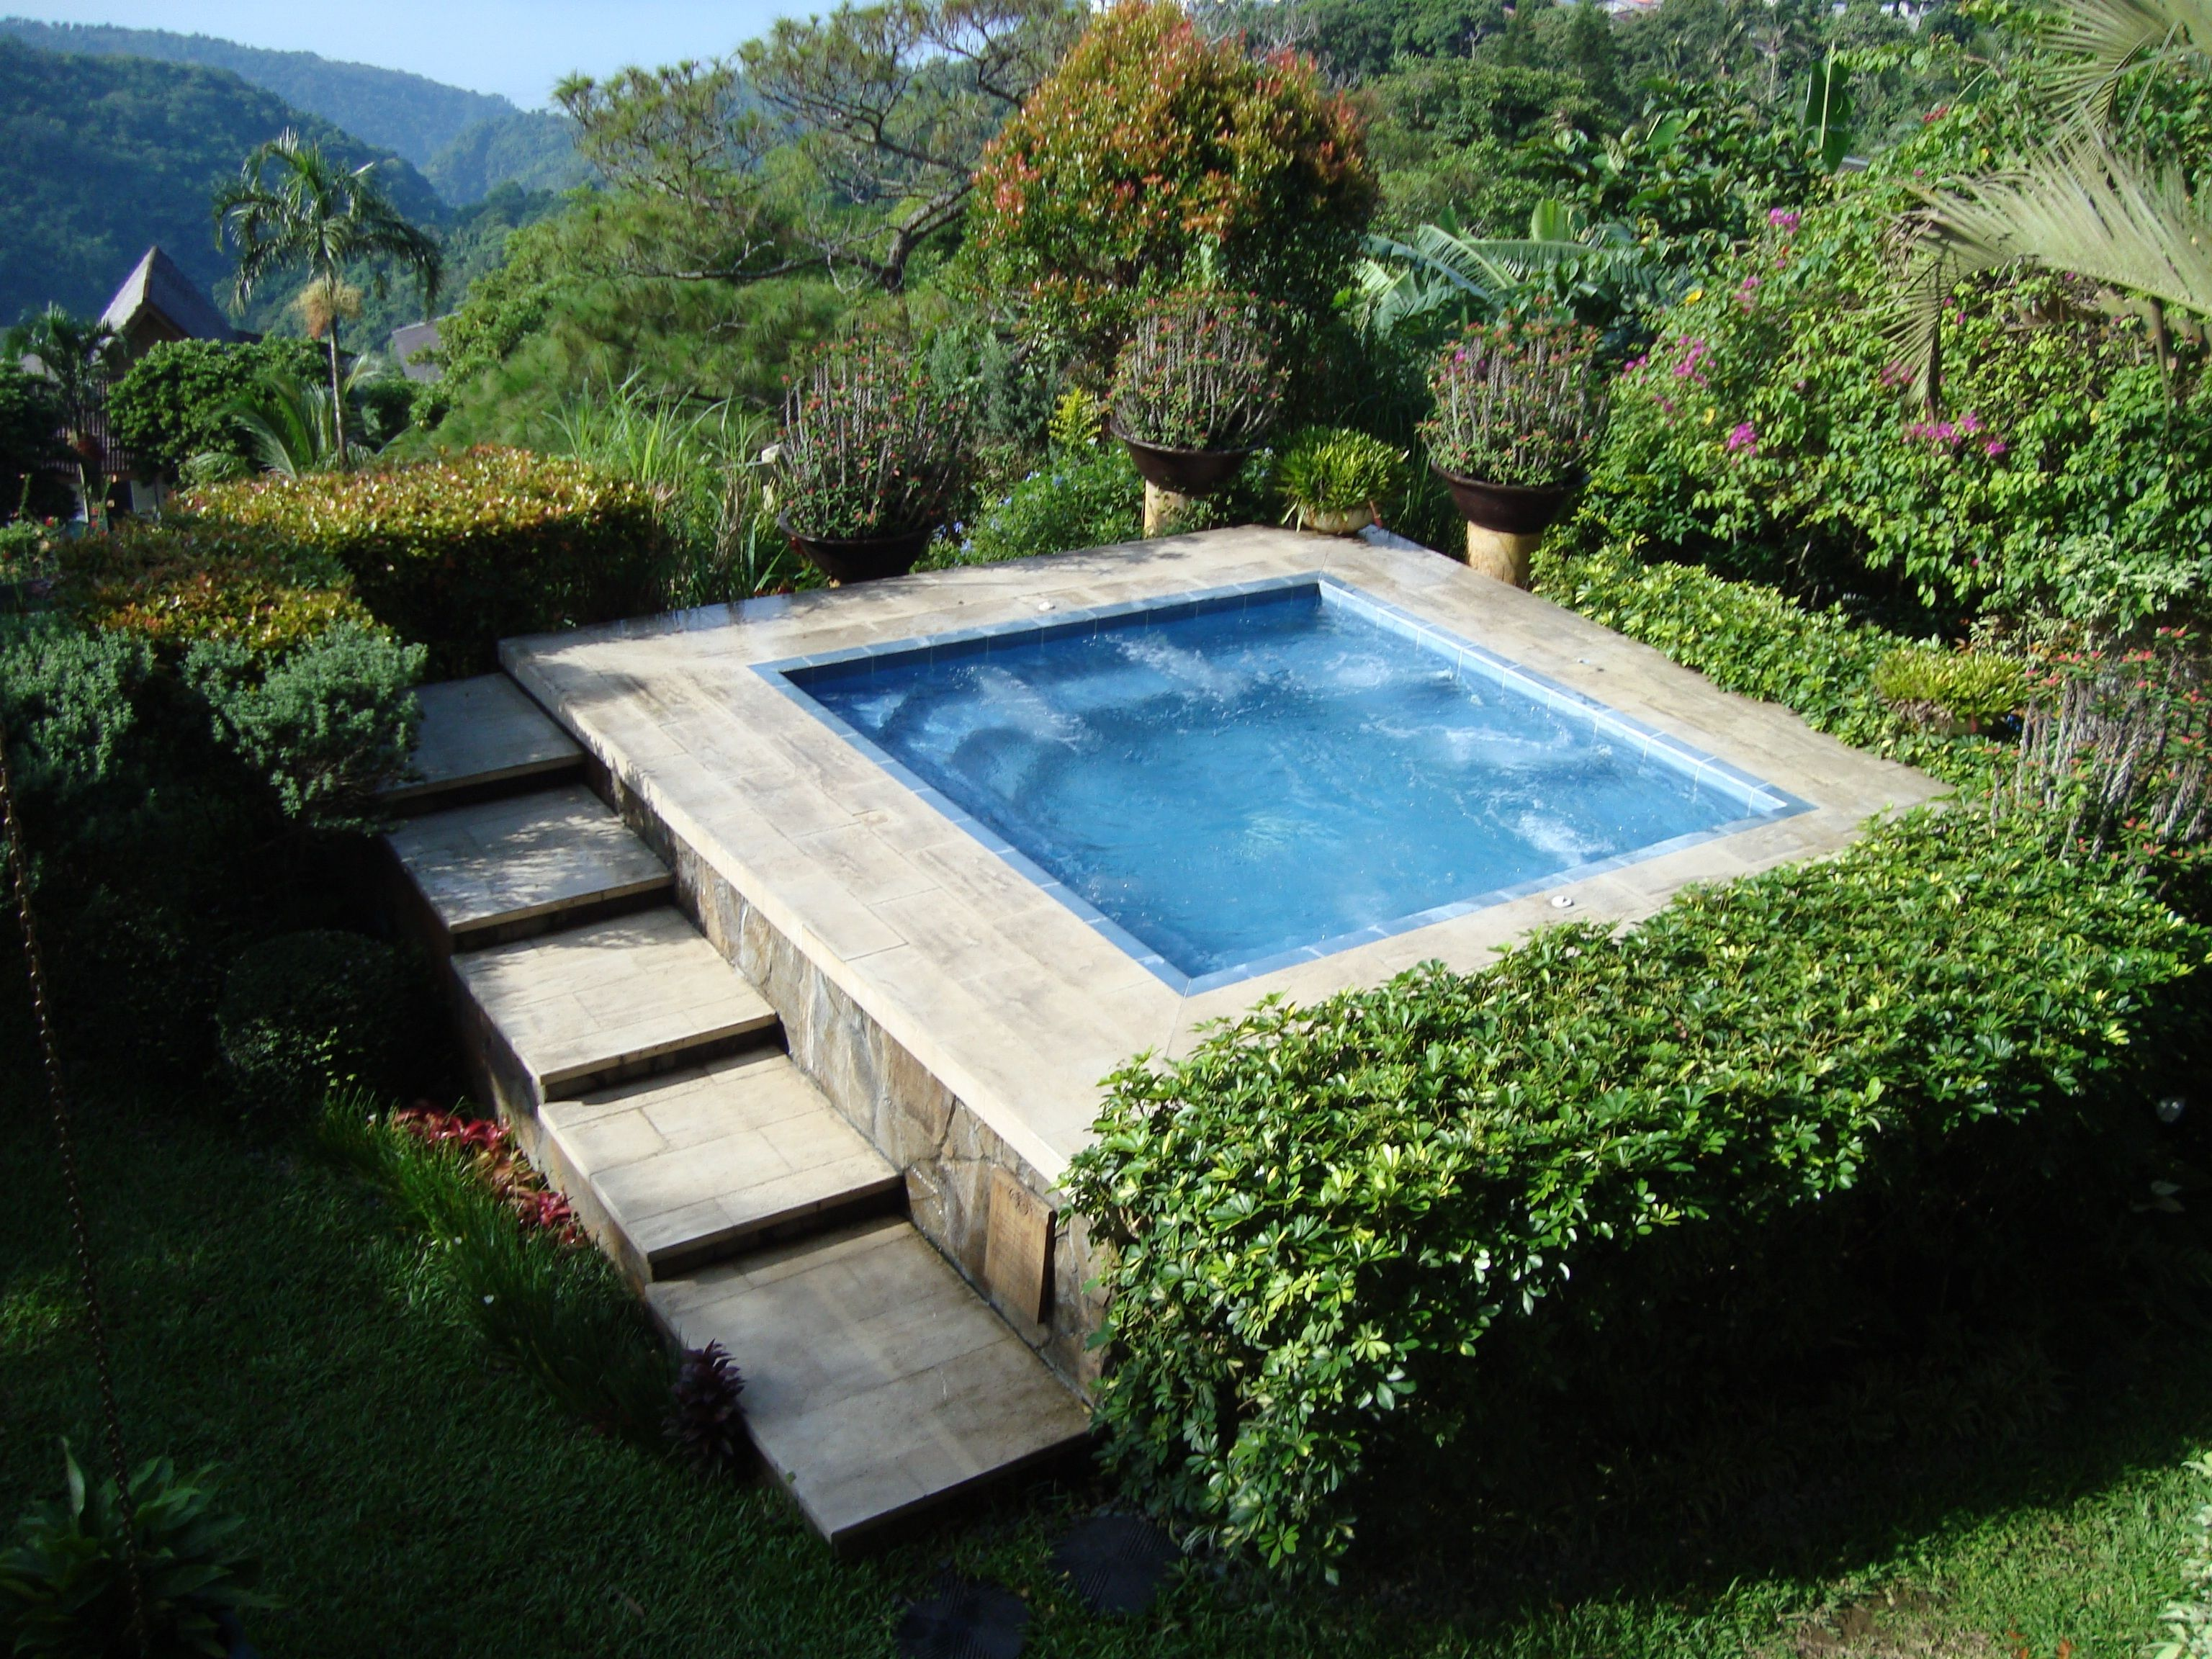 Check out the outdoor hot tub accessories at Jacuzzi Hot Tubs